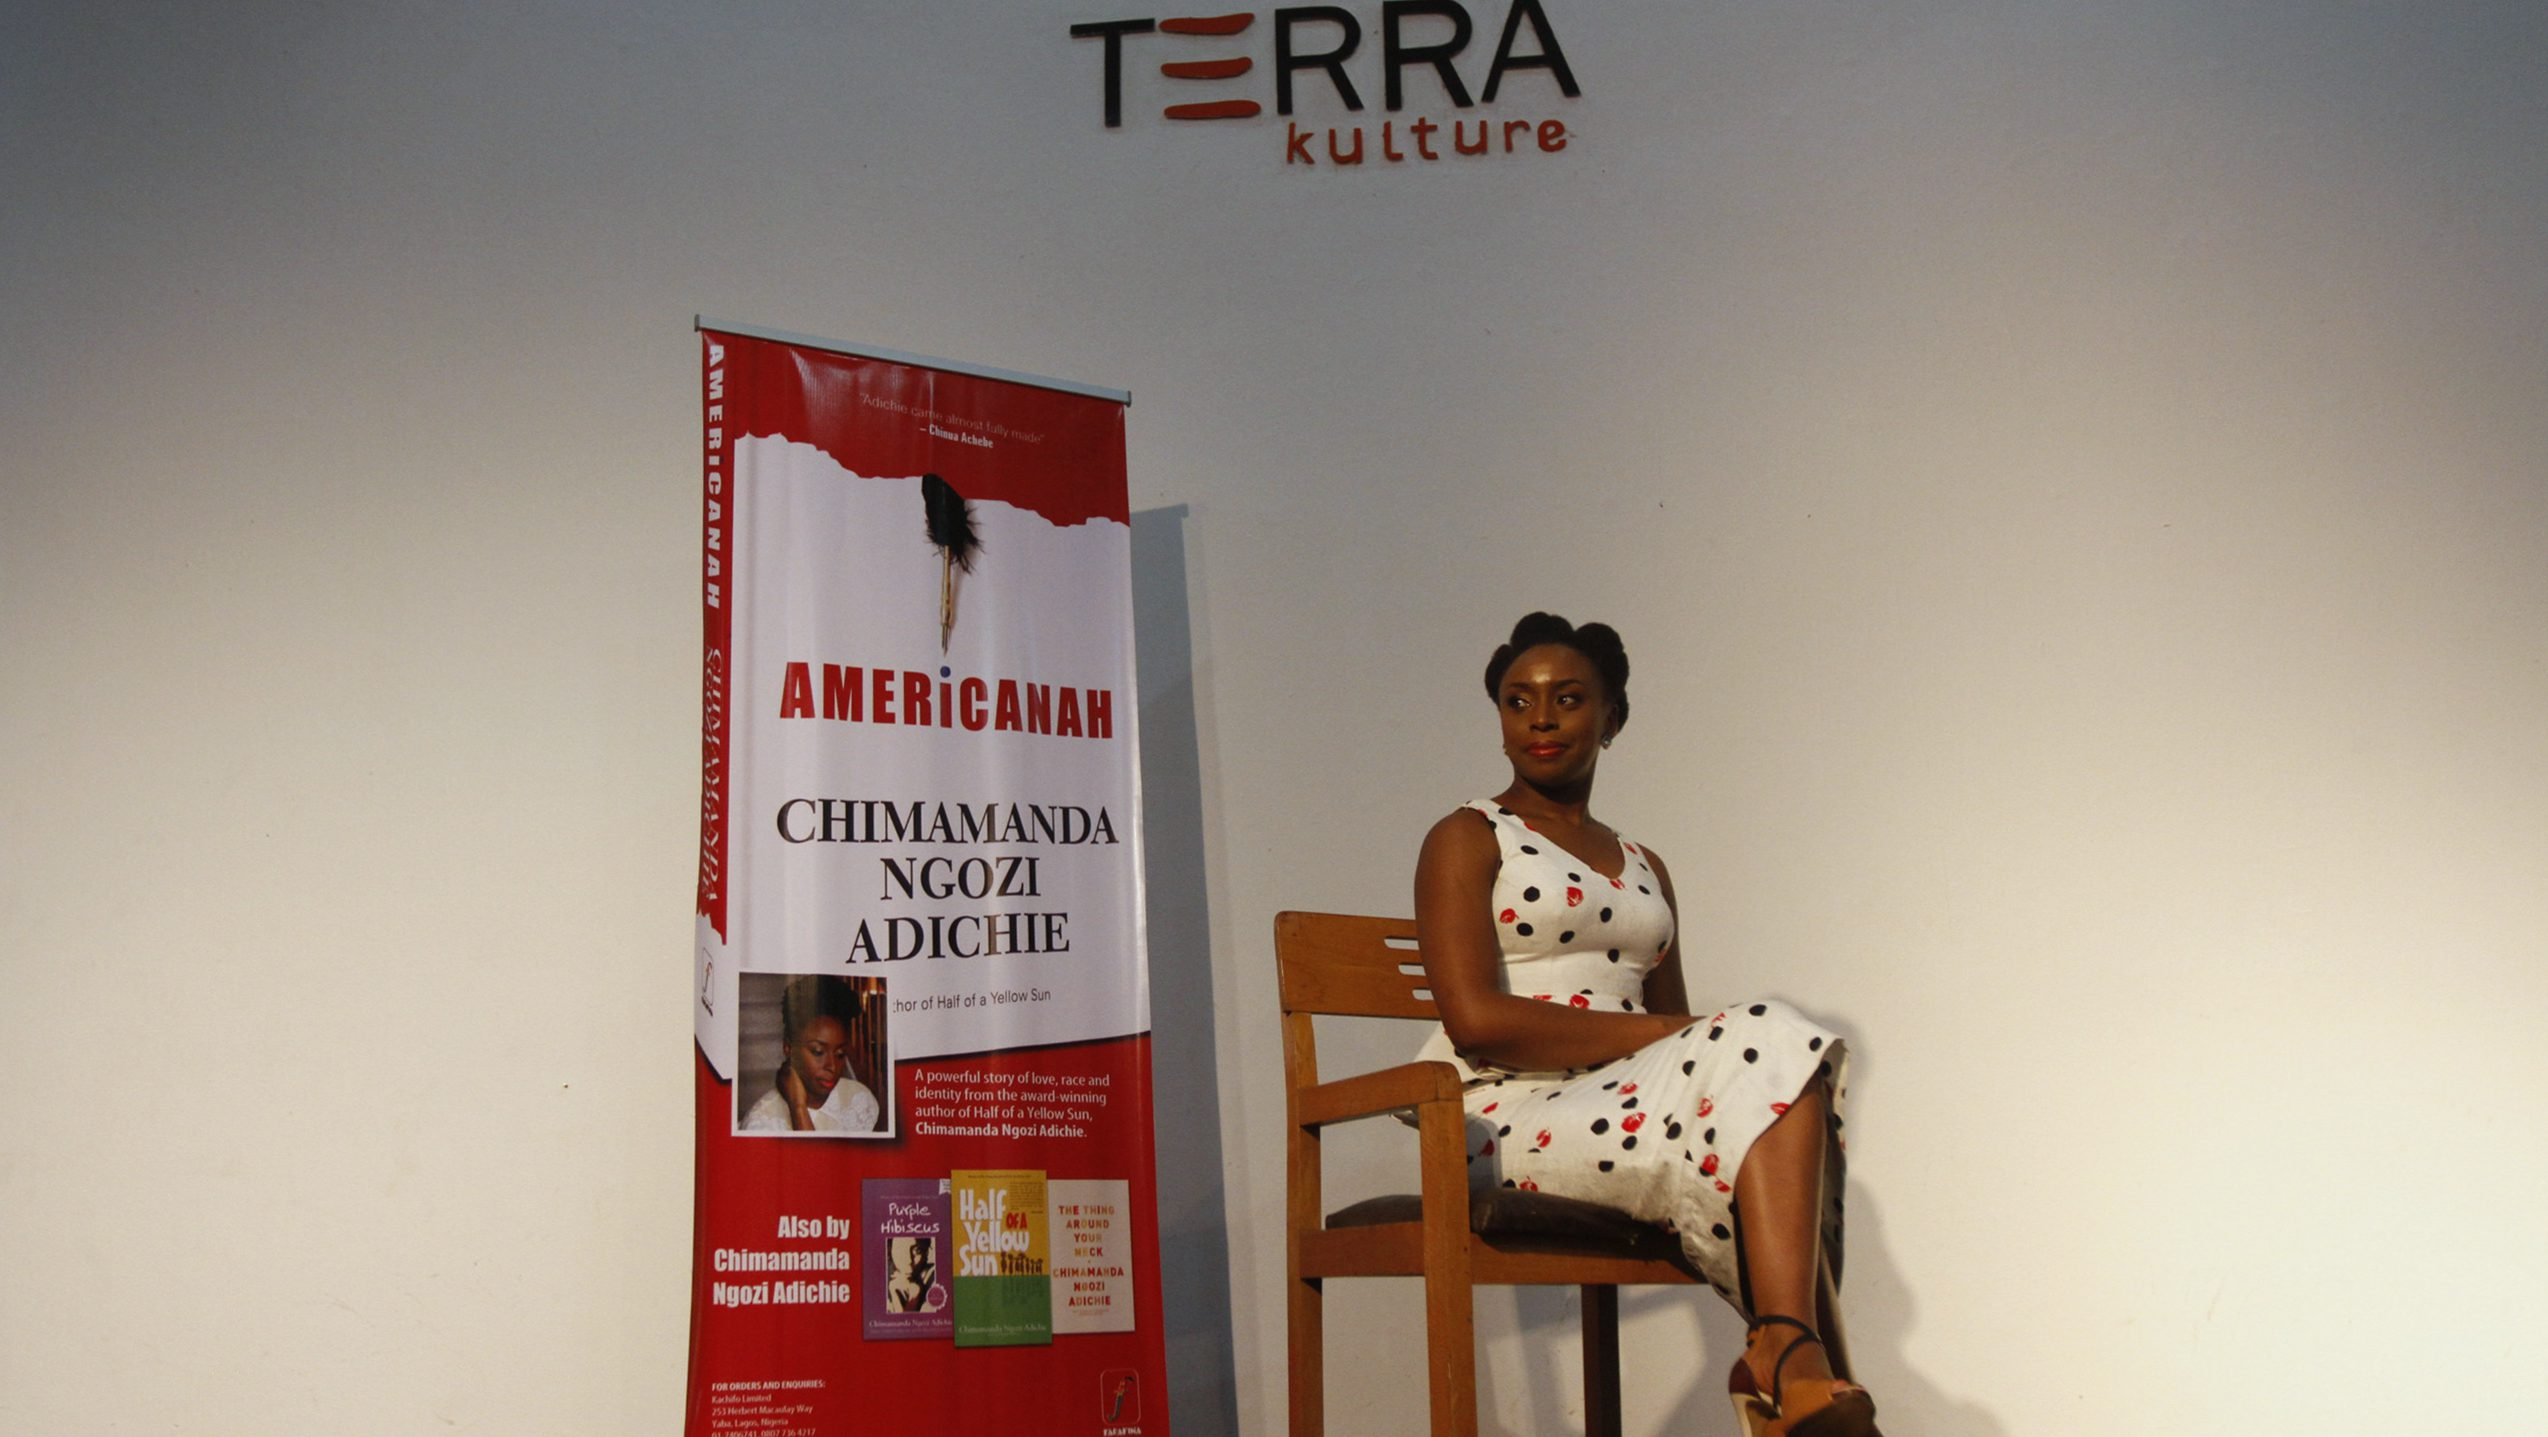 Nigerian novelist Chimamanda Ngozi Adichie poses for a photograph after a reading of her new book 'Americanah' in Lagos